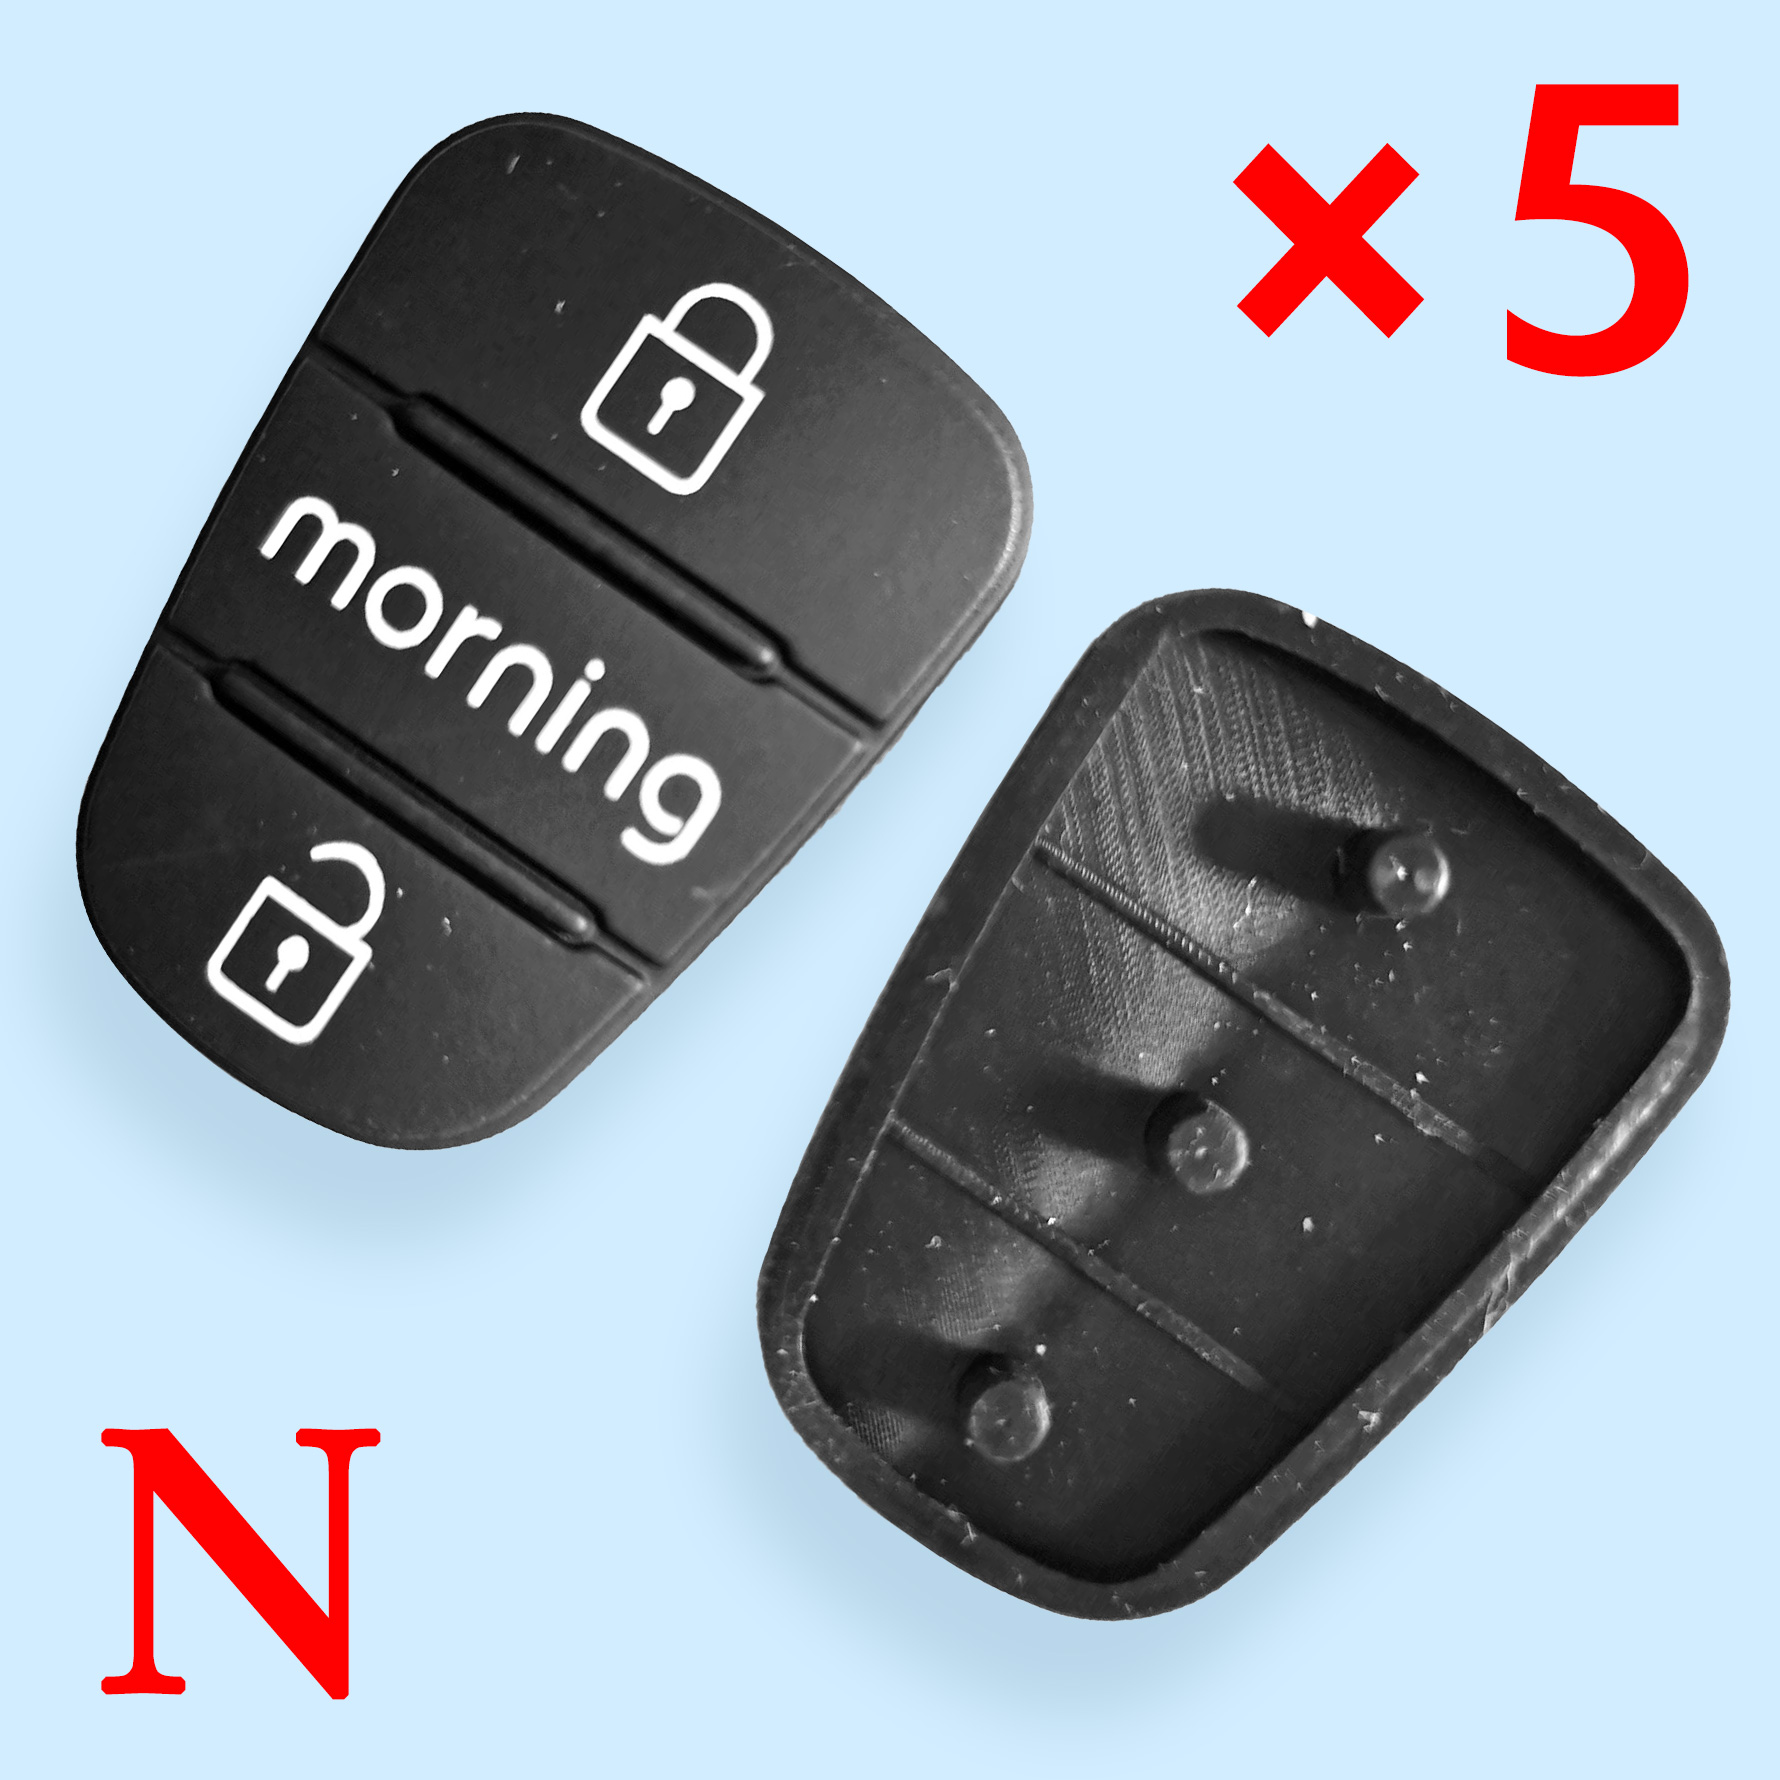 3 Buttons Rubber Pad for Hyundai  - 5 pcs